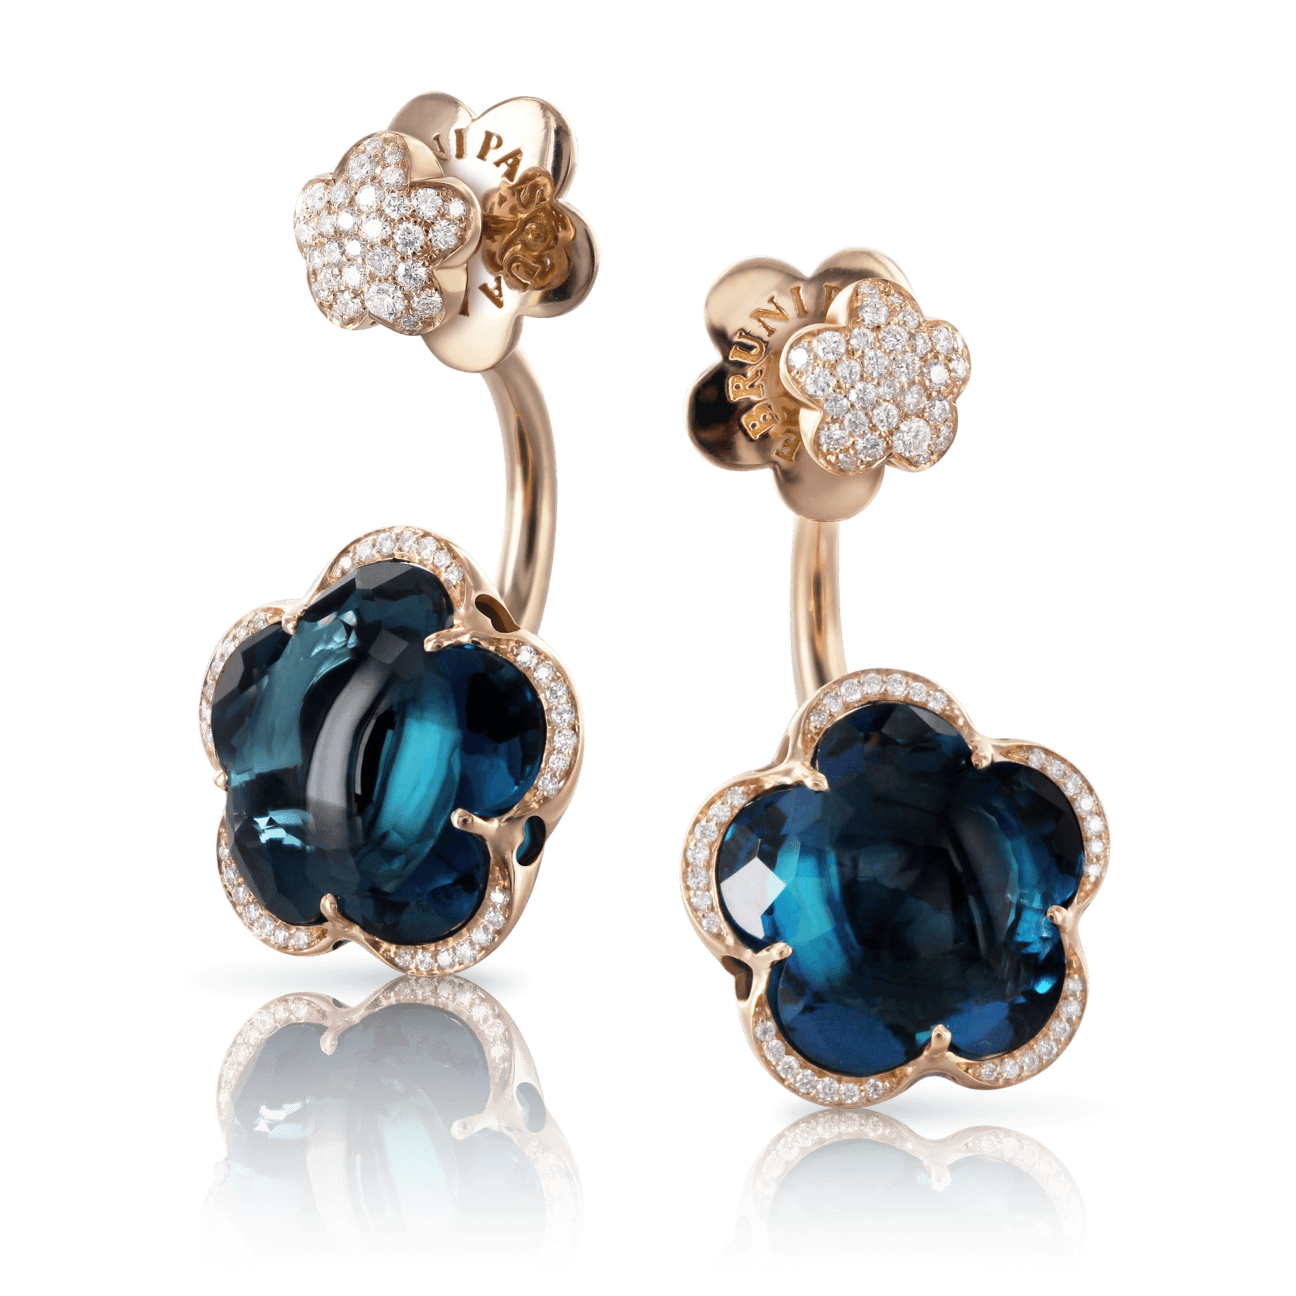 BON TON EARRINGS WITH LONDON BLUE TOPAZ AND DIAMONDS